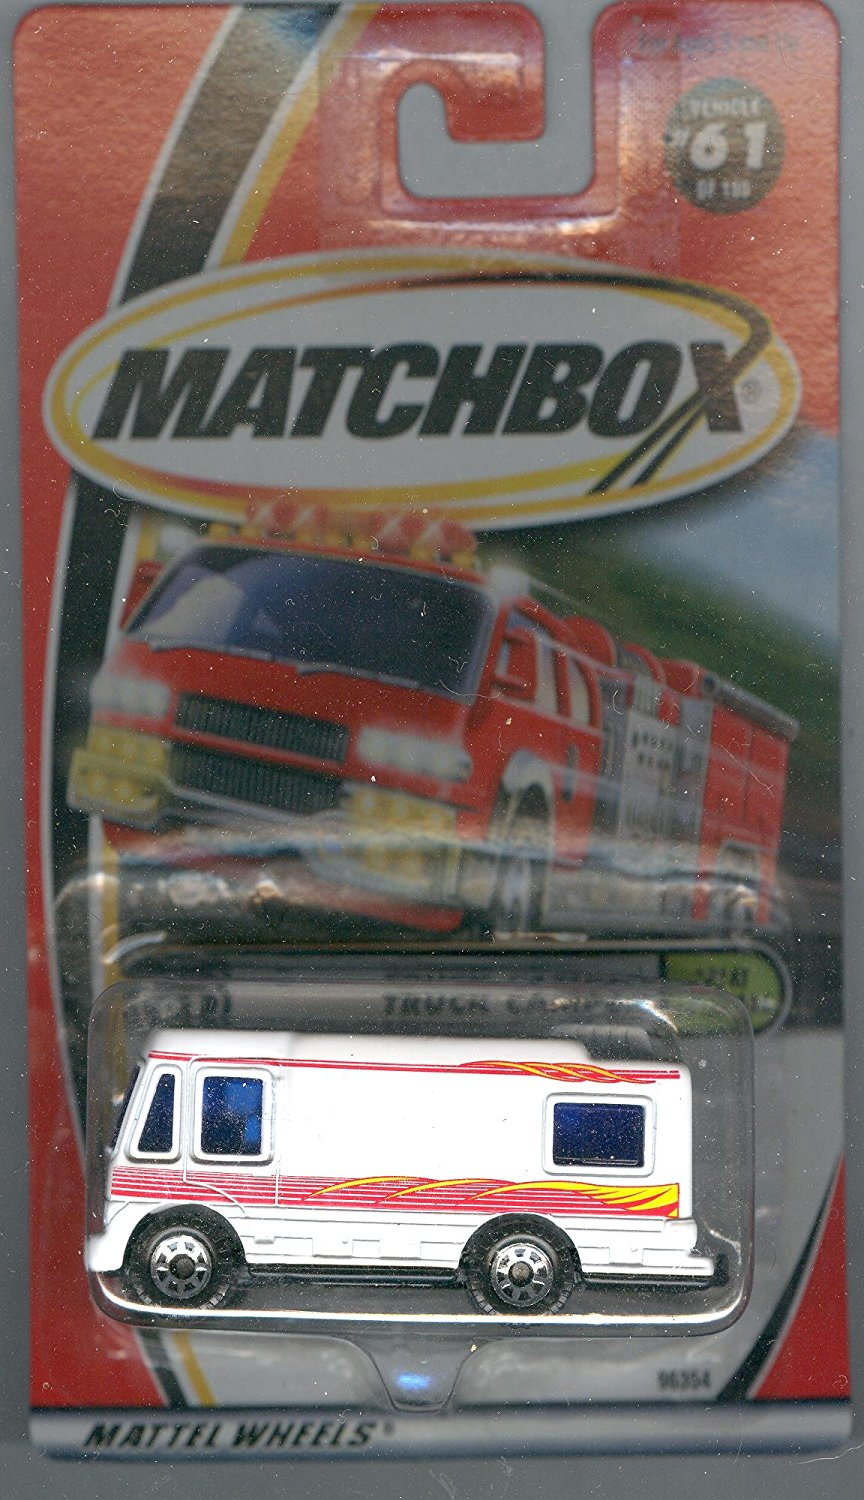 2000-61 Great Outdoors Truck Camper 1:64 Scale, Matchbox MTruck Camper #61 White with Red... by